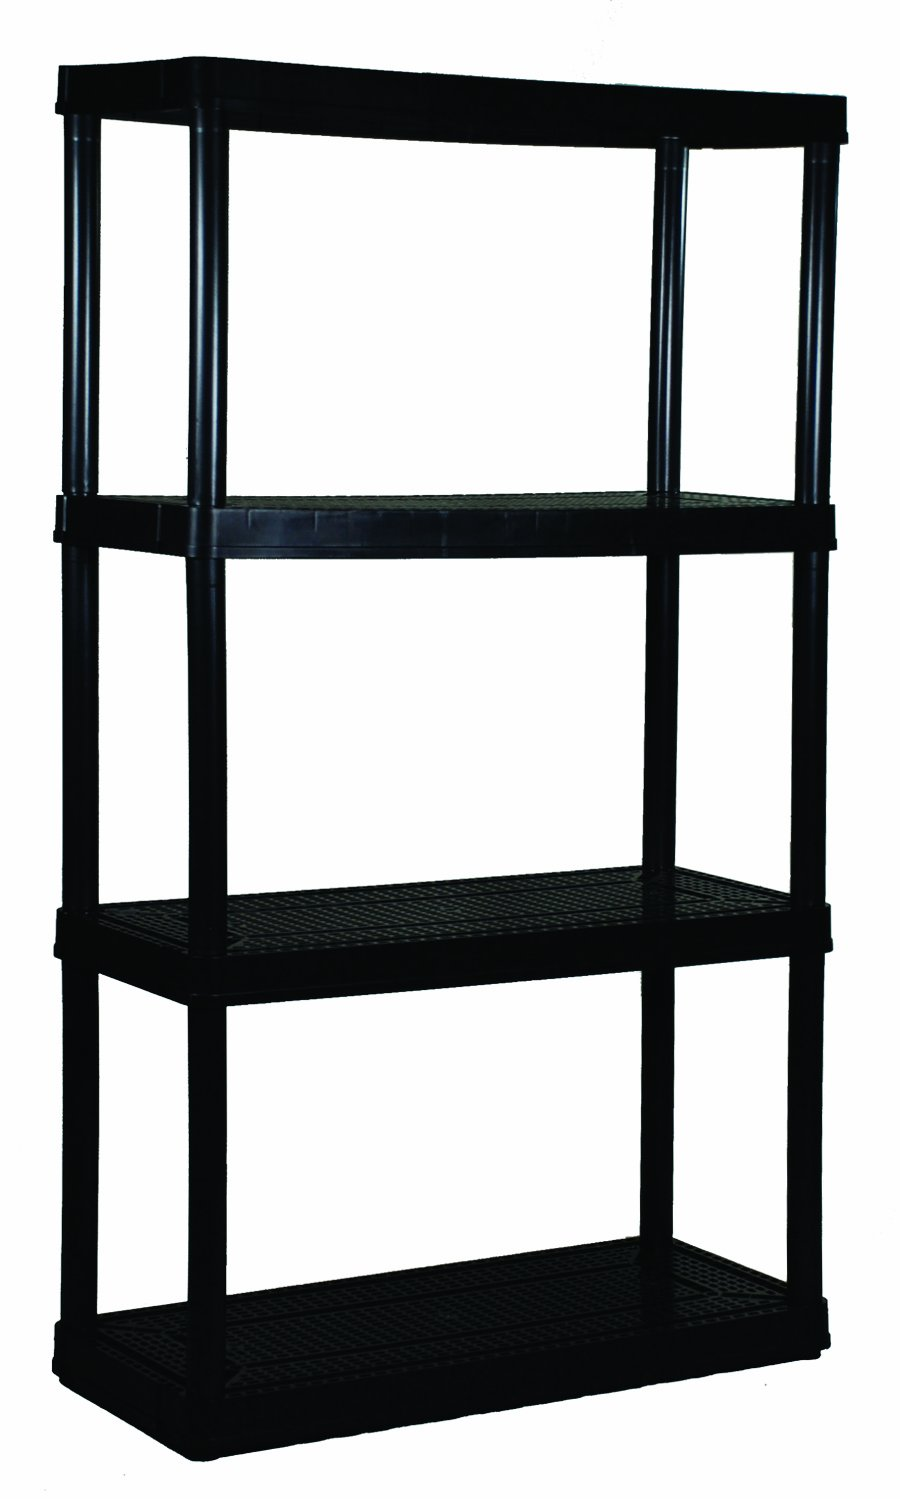 Gracious Living 4-Shelf Medium Duty Shelf Unit Gracious Living Corporation 91021MAXIT-1C-36